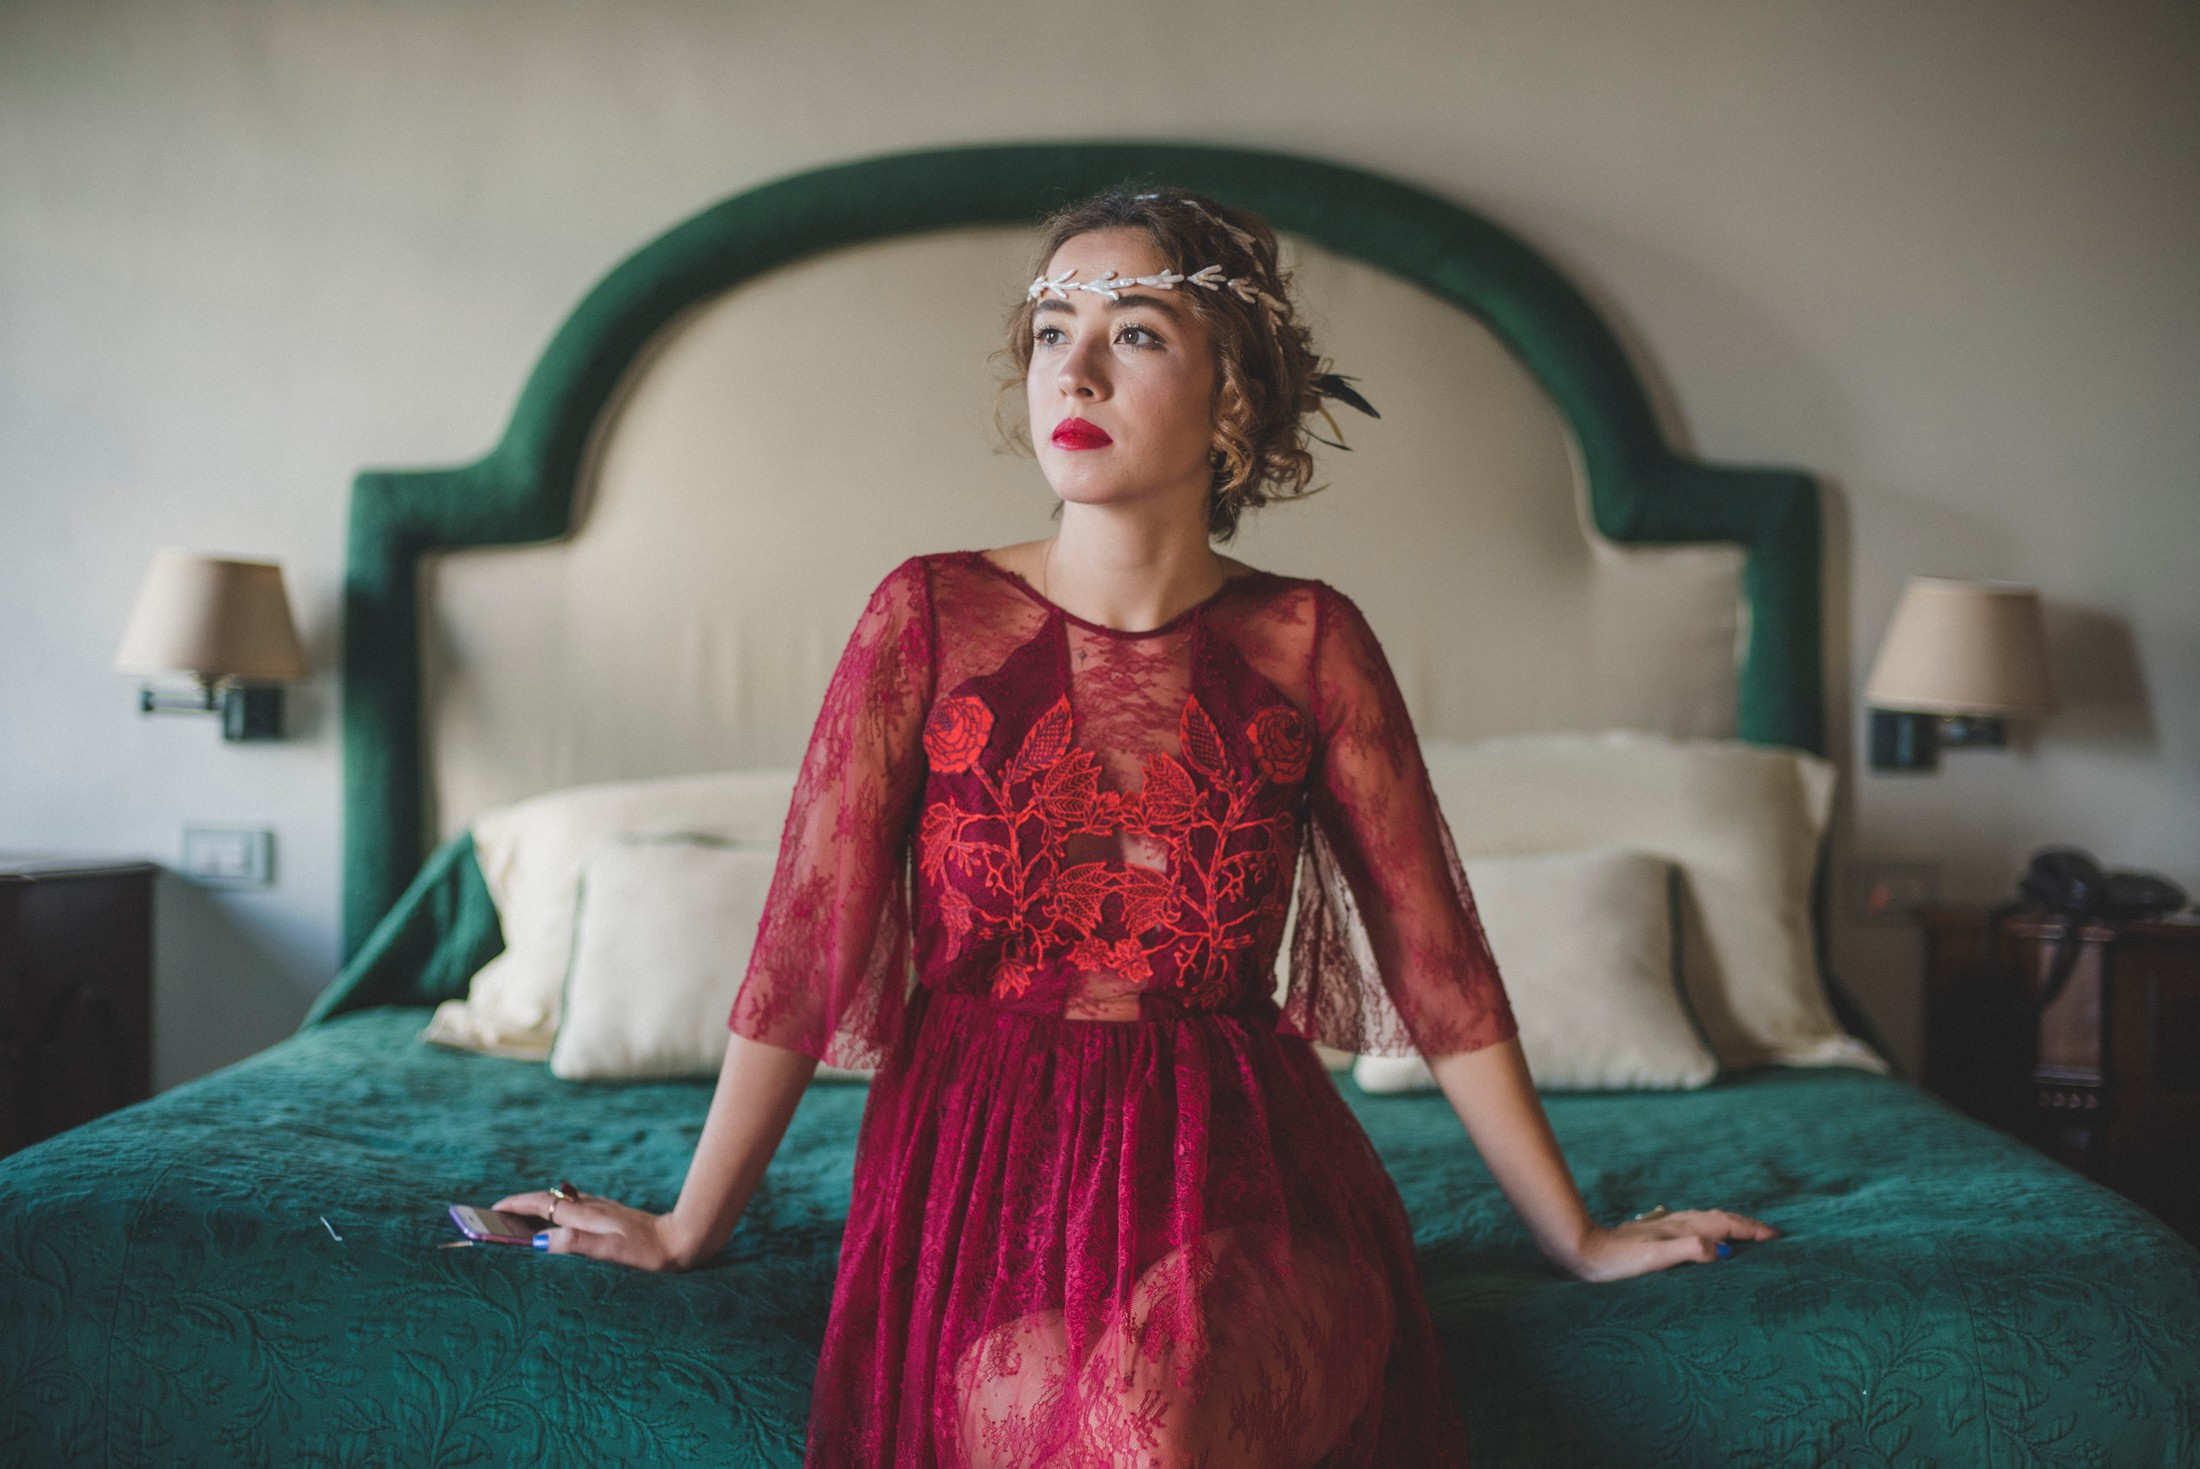 woman in a red dress sitting on the bed